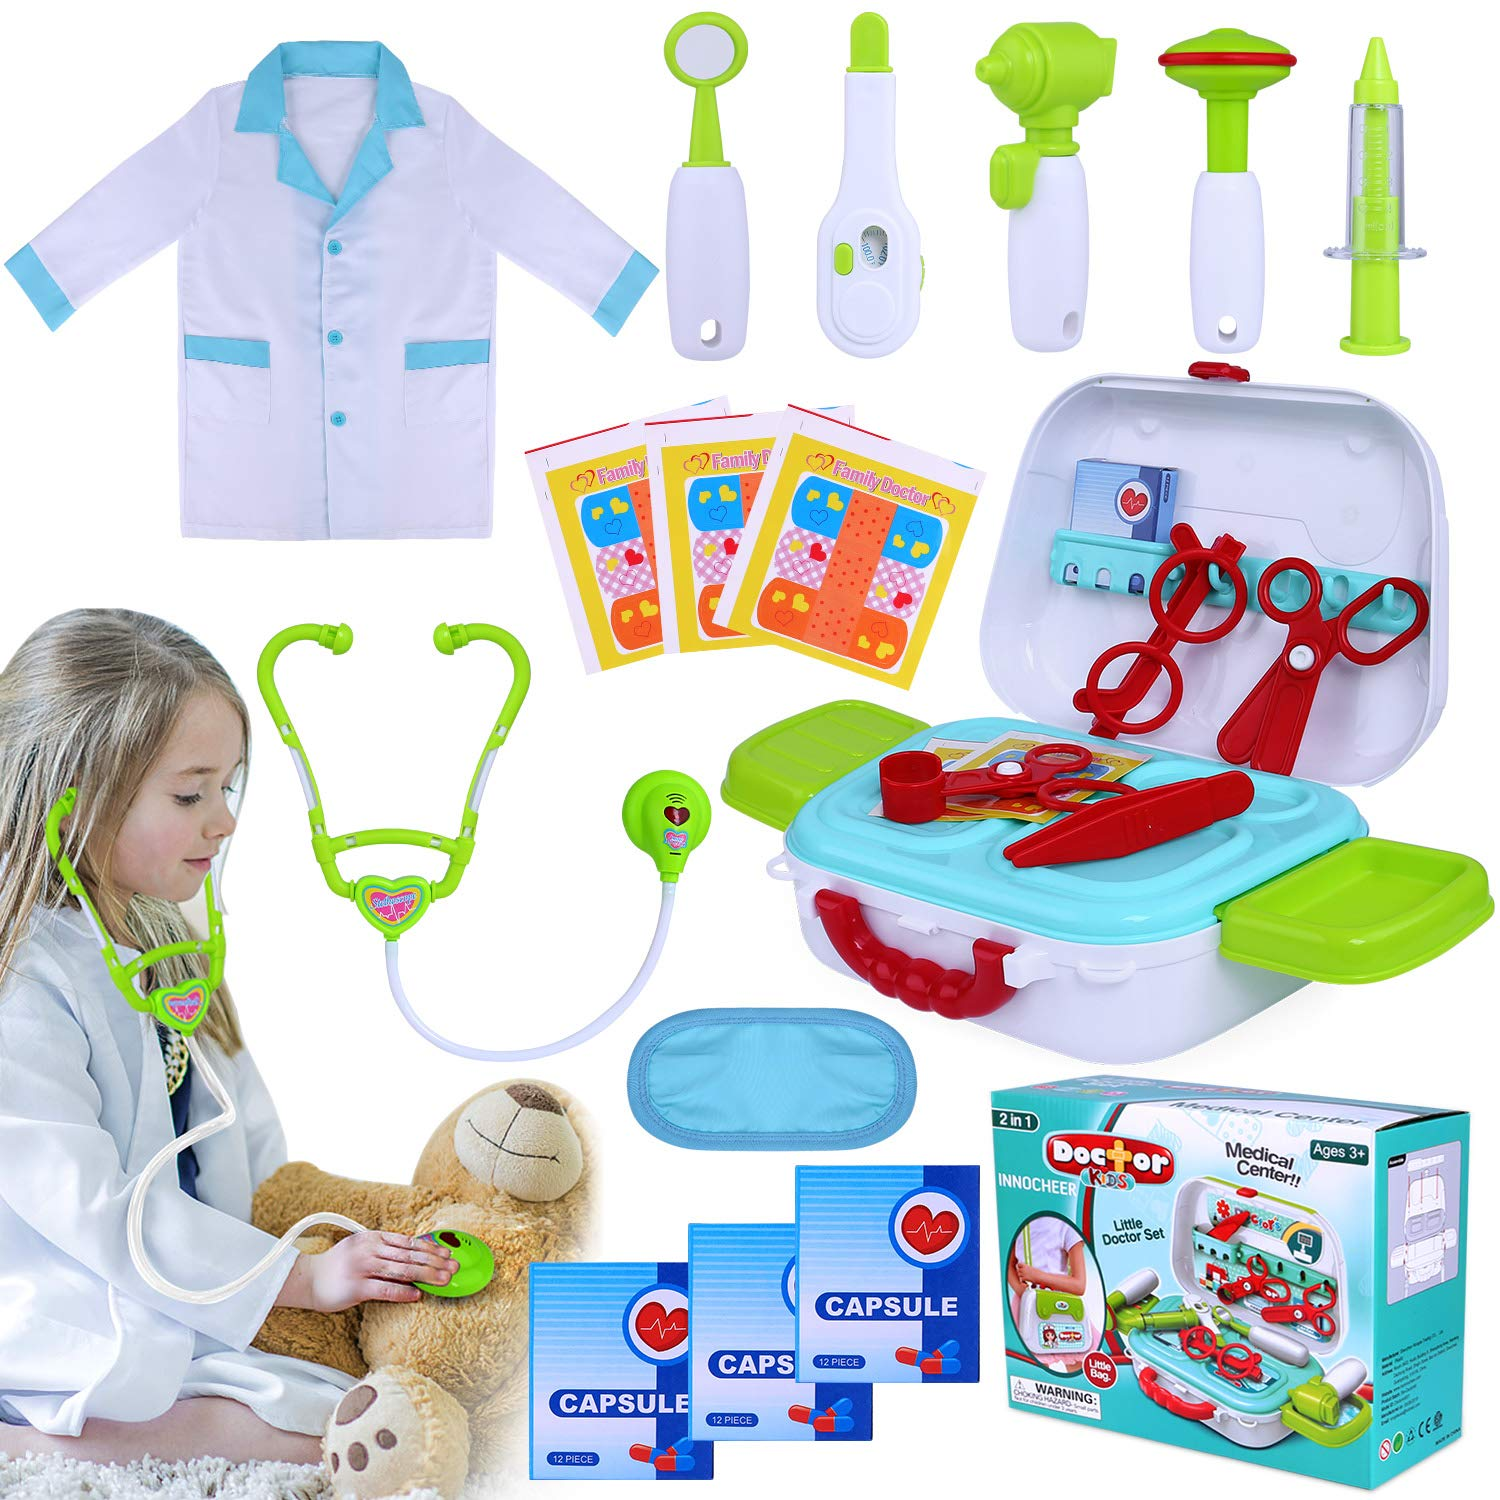 INNOCHEER Kids Doctor Kit 20 Pieces Pretend-n-Play Medical Toys Set with Roleplay Doctor Costume and Carry Case for Little Girls, School Classroom by INNOCHEER